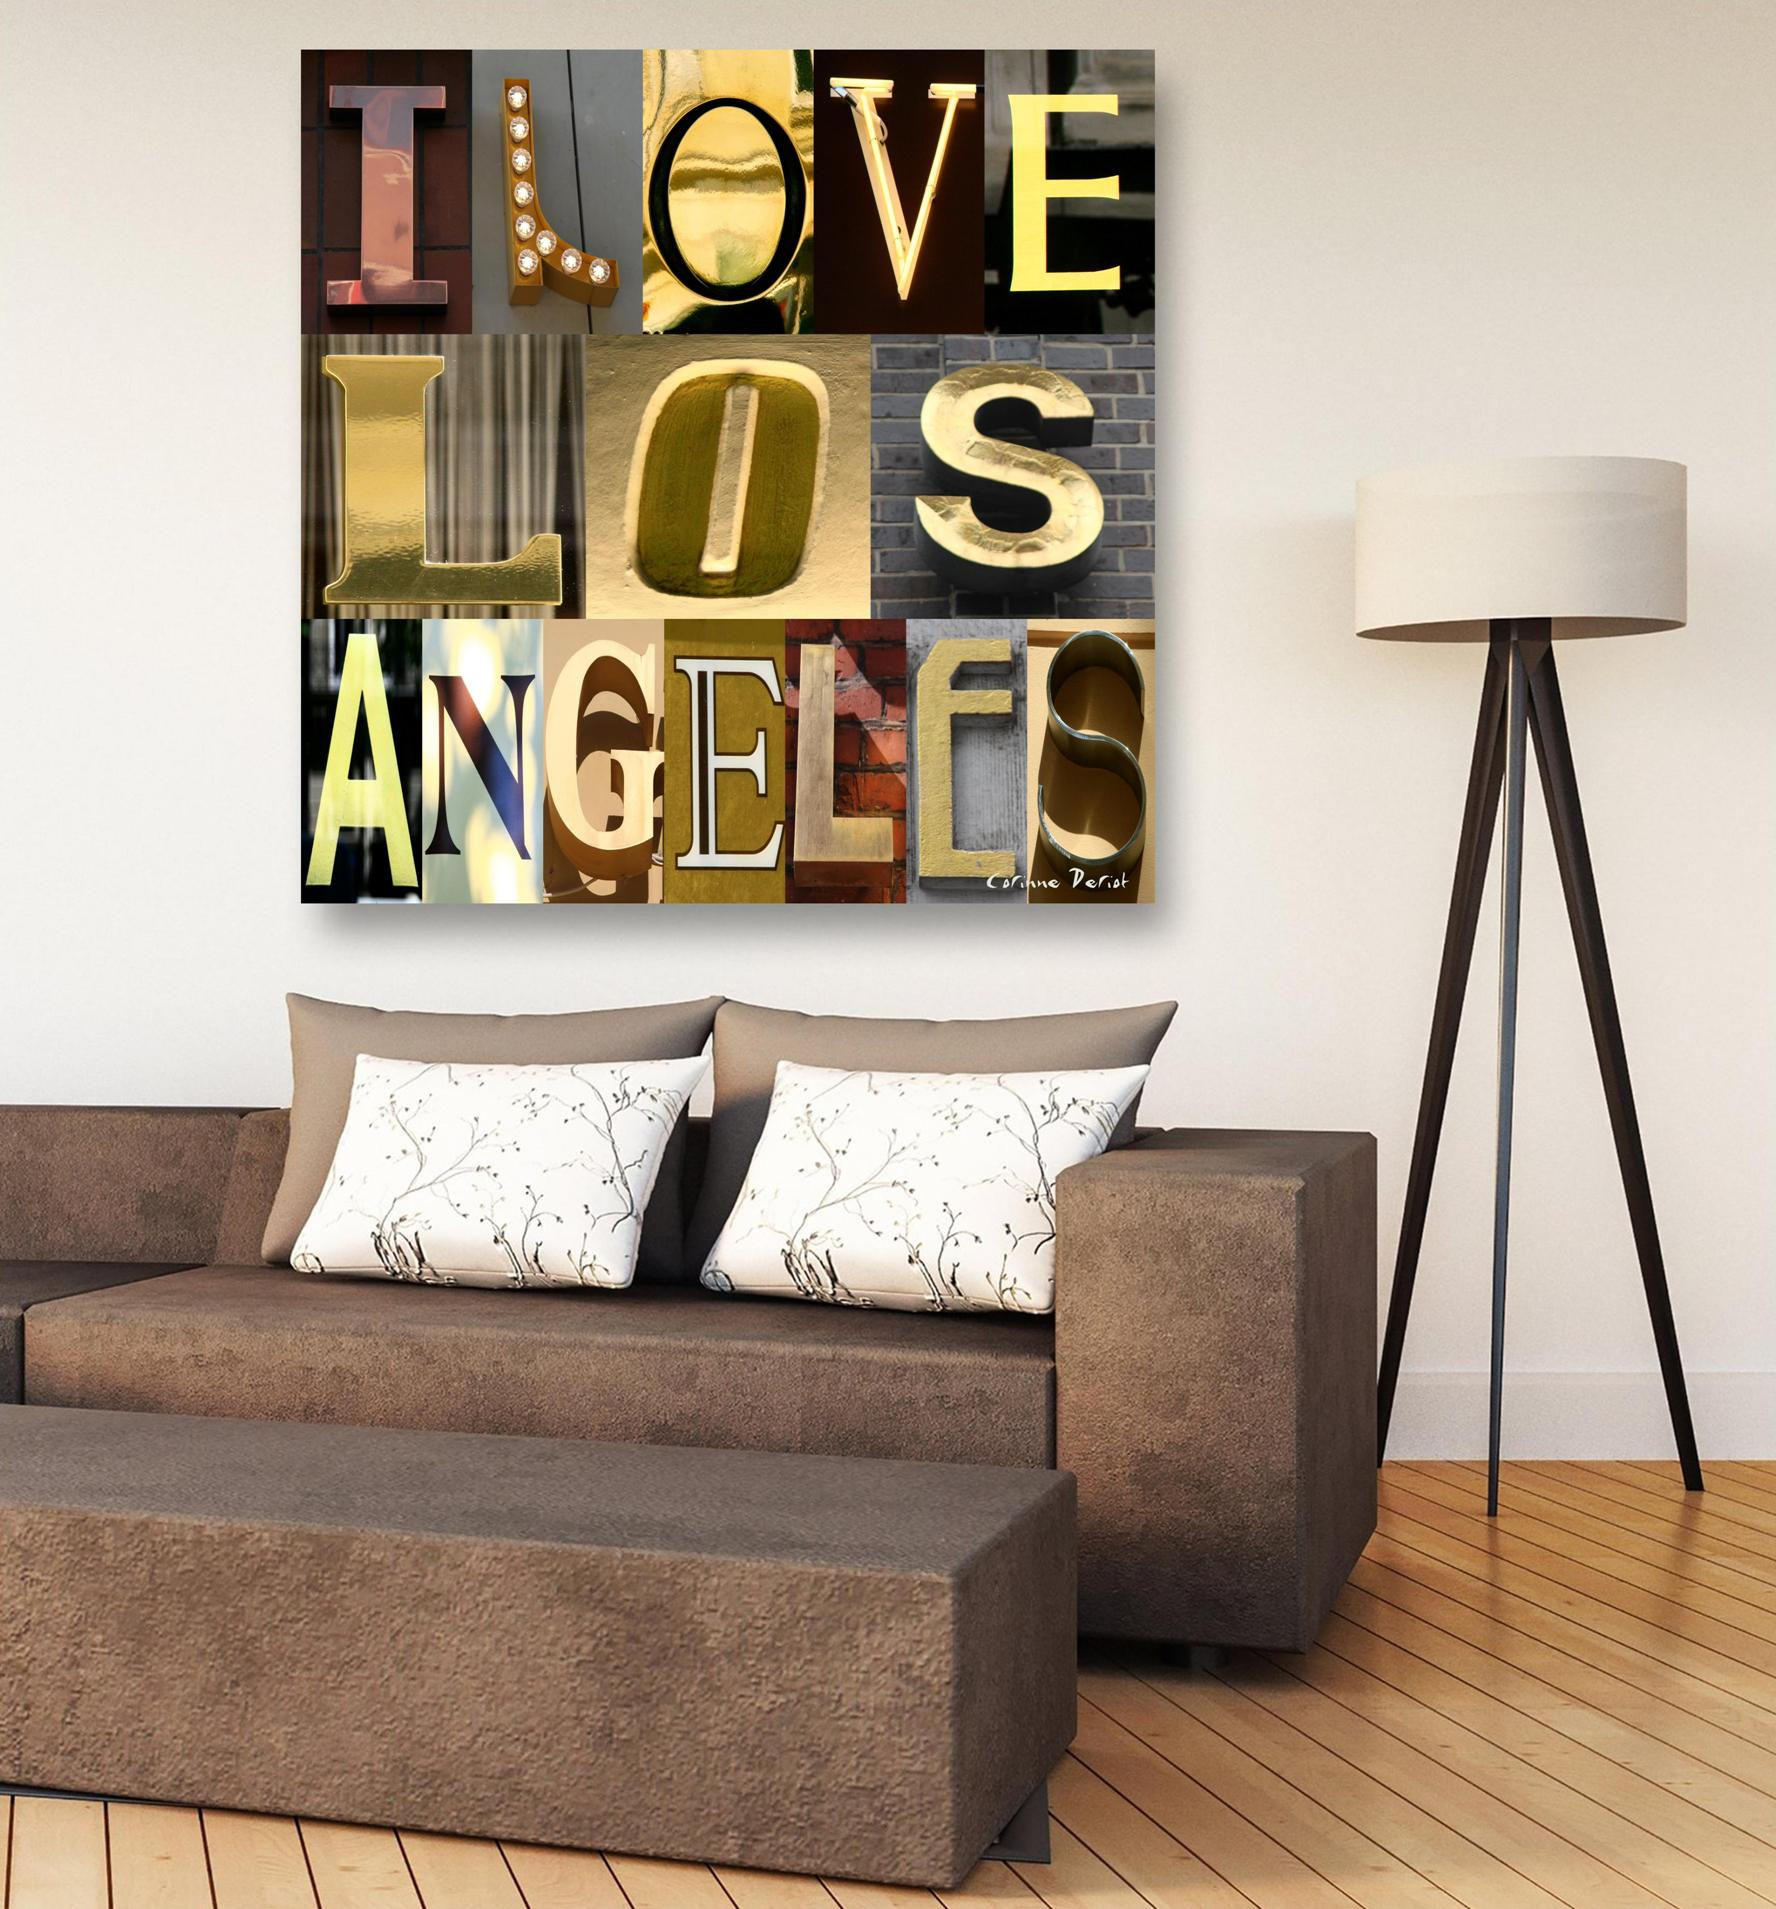 I LOVE LOS ANGELES 04